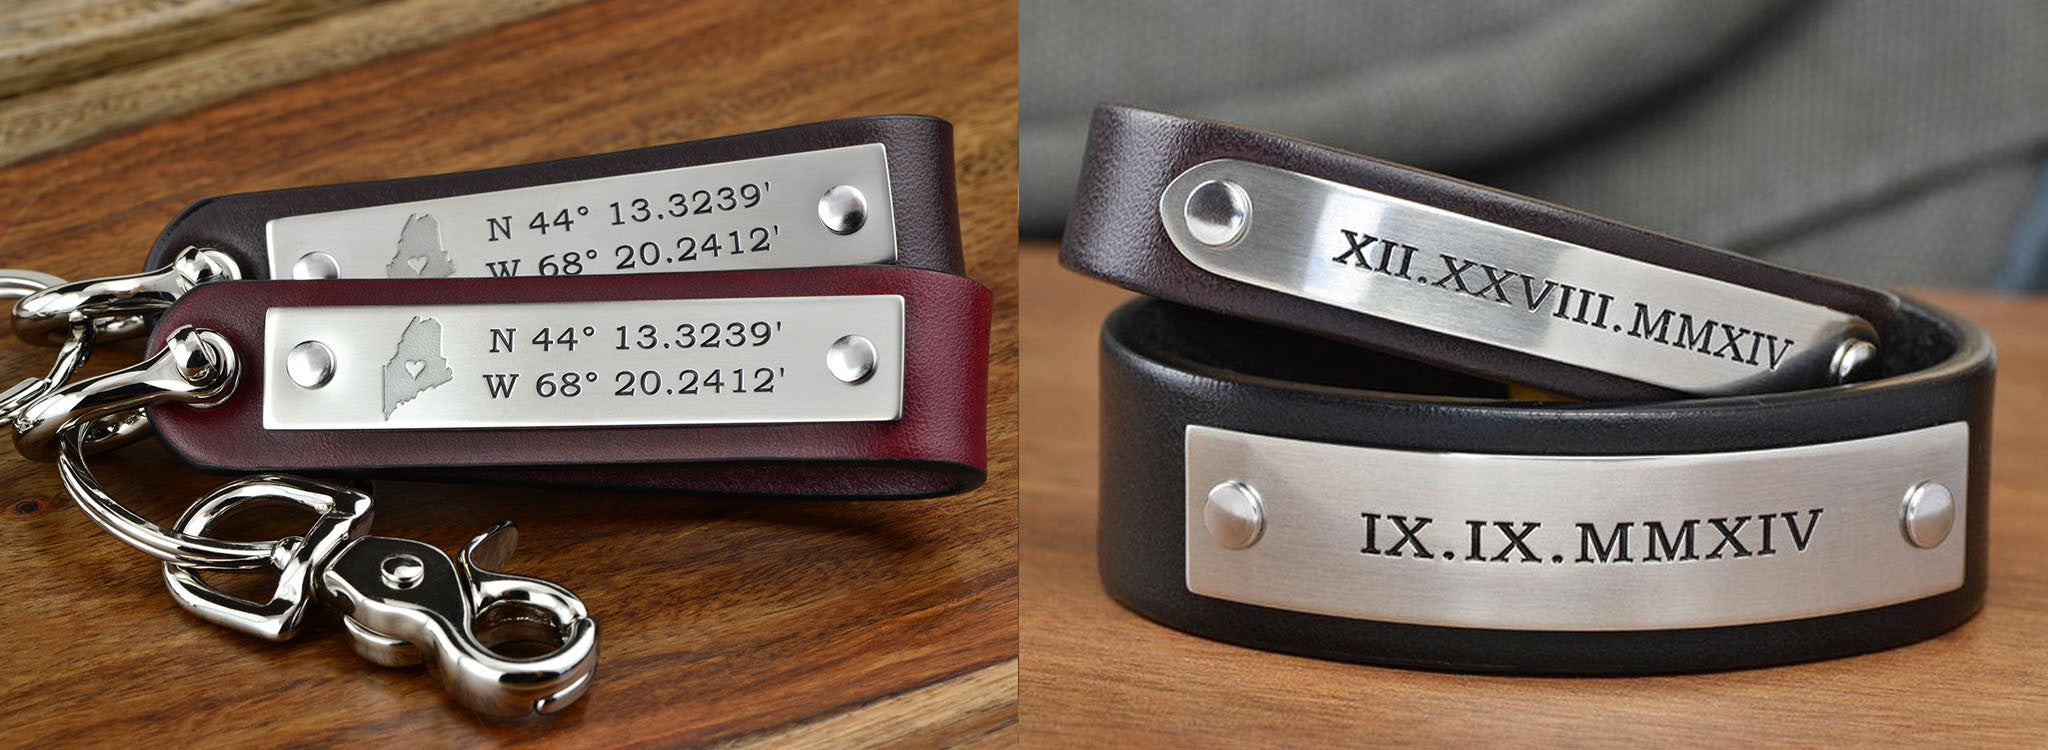 3rd Anniversary Leather Keychain and Bracelet Set